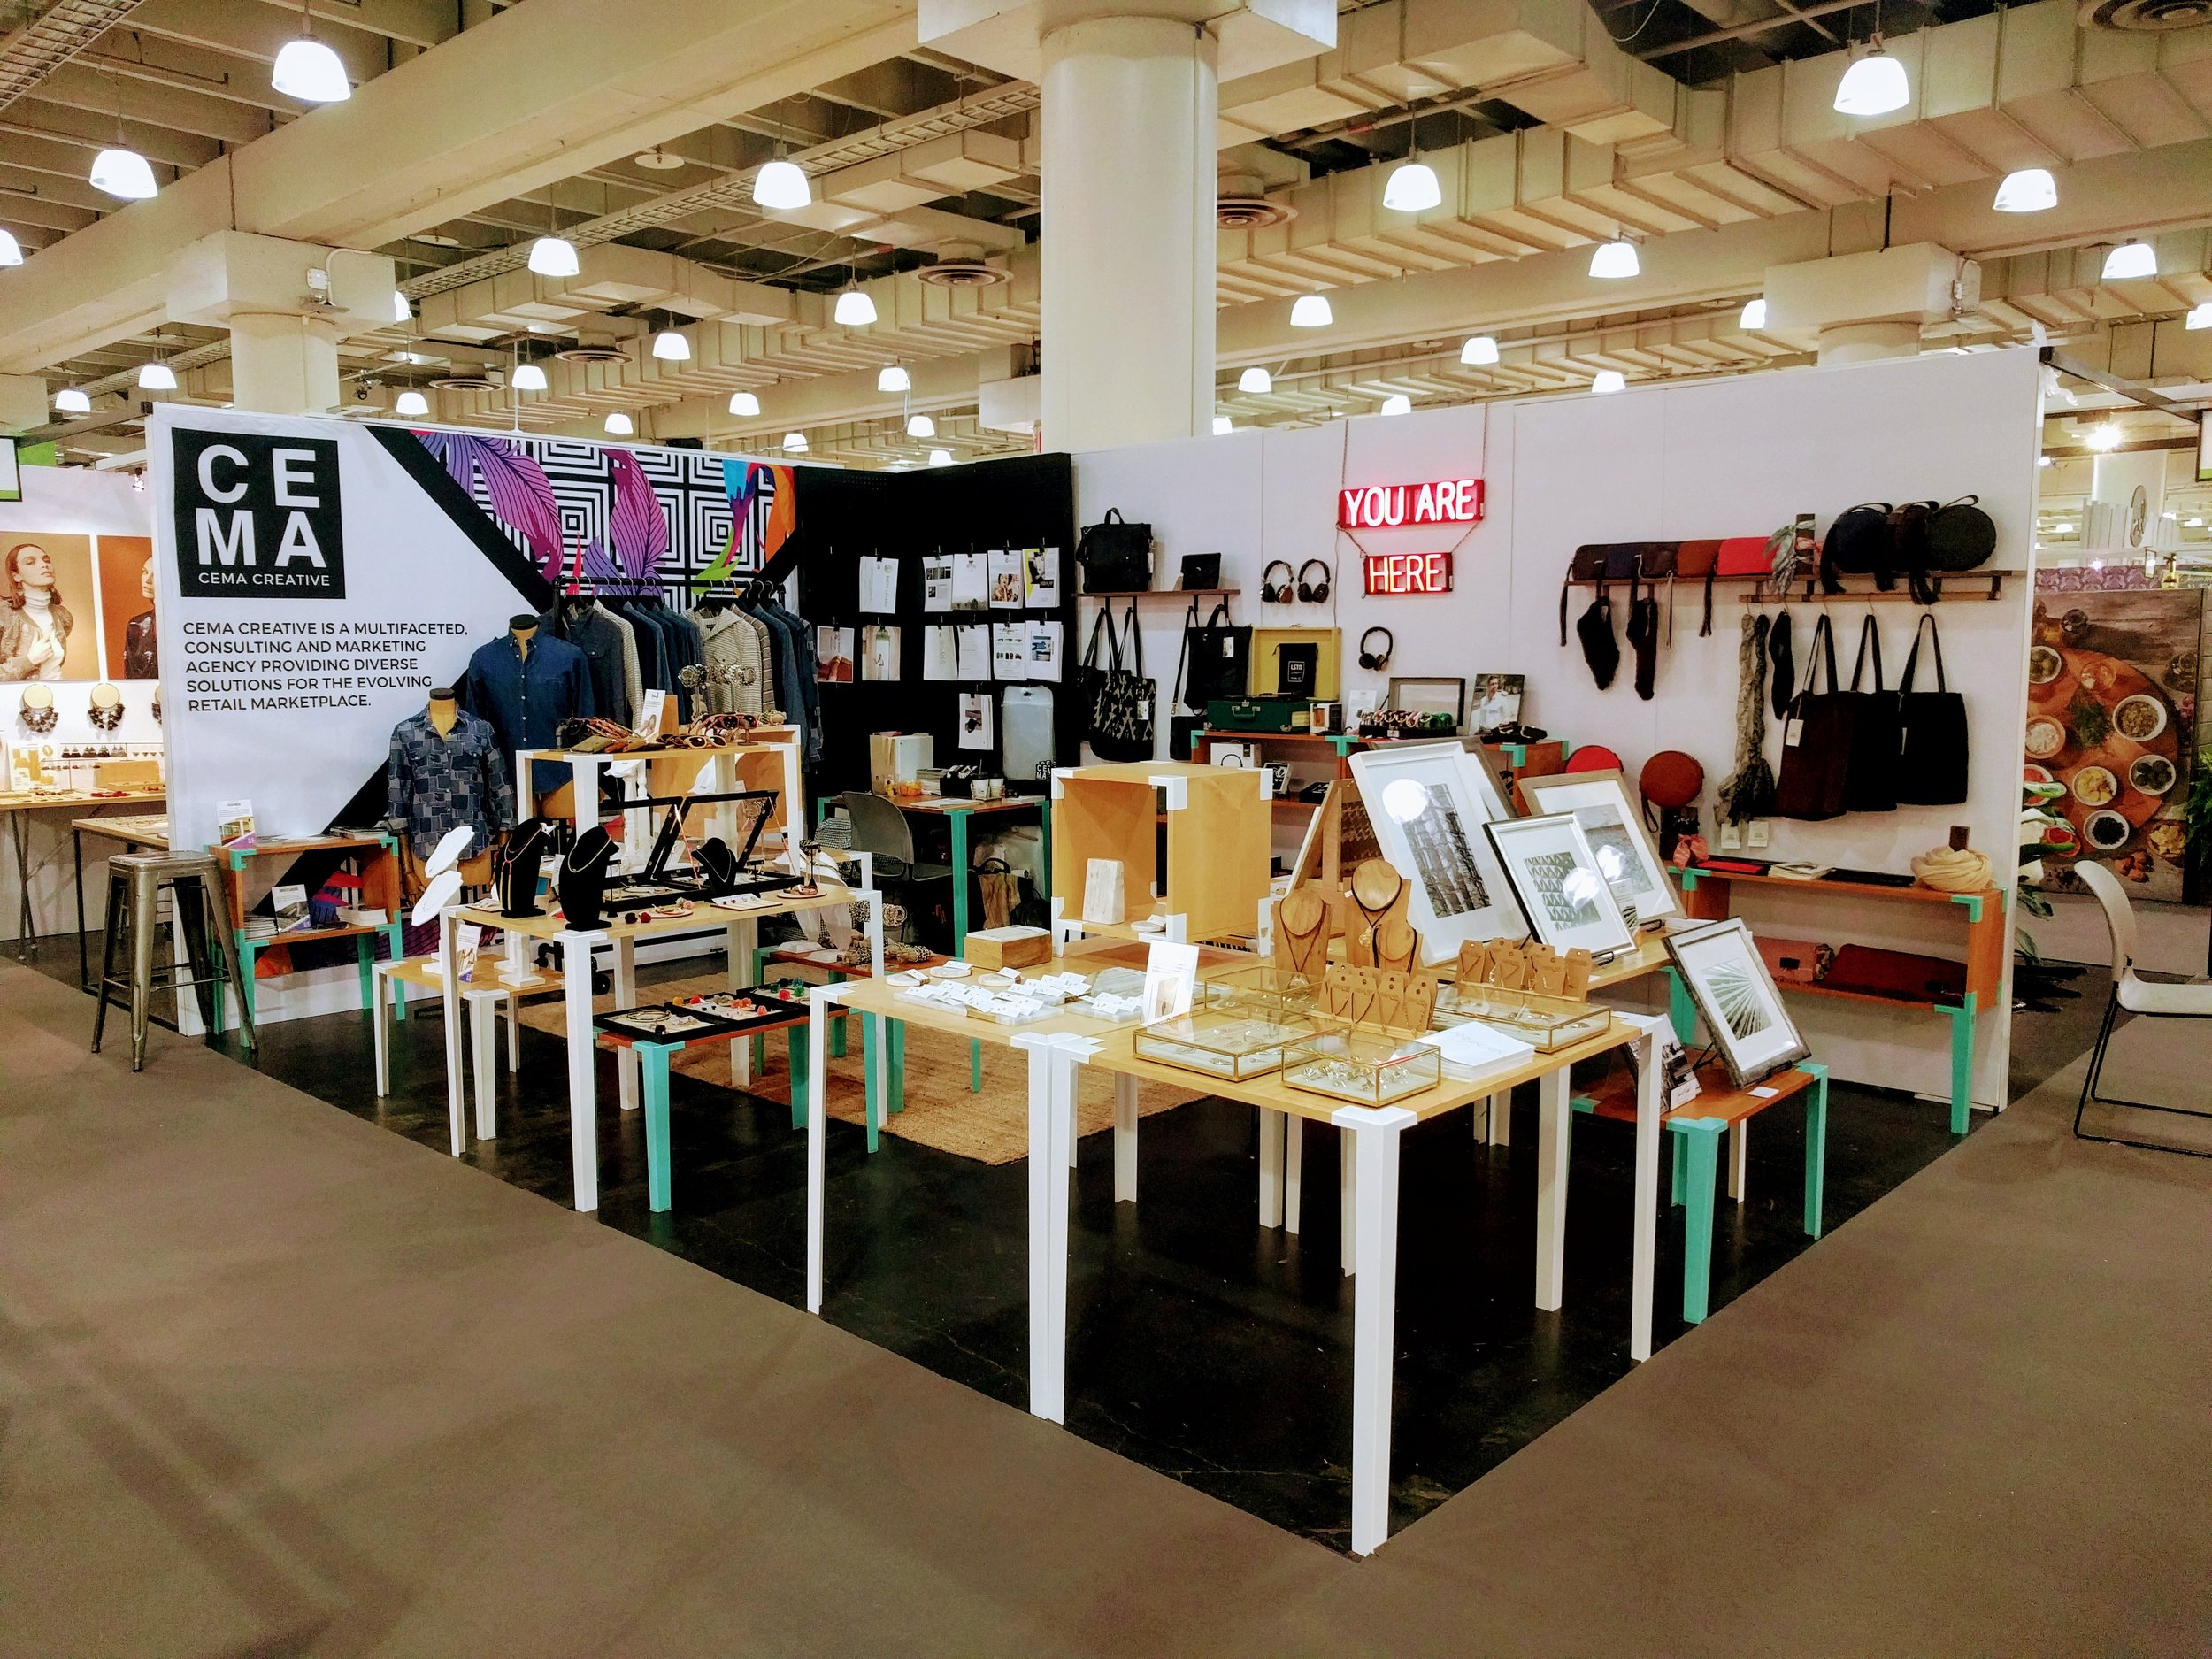 CEMA CREATIVE Represented 14 designers at the august 2017 NY NOw trade show. handling everything from orders, promotional material and follow up with some of the best specialty and lifestyle stores in the country.